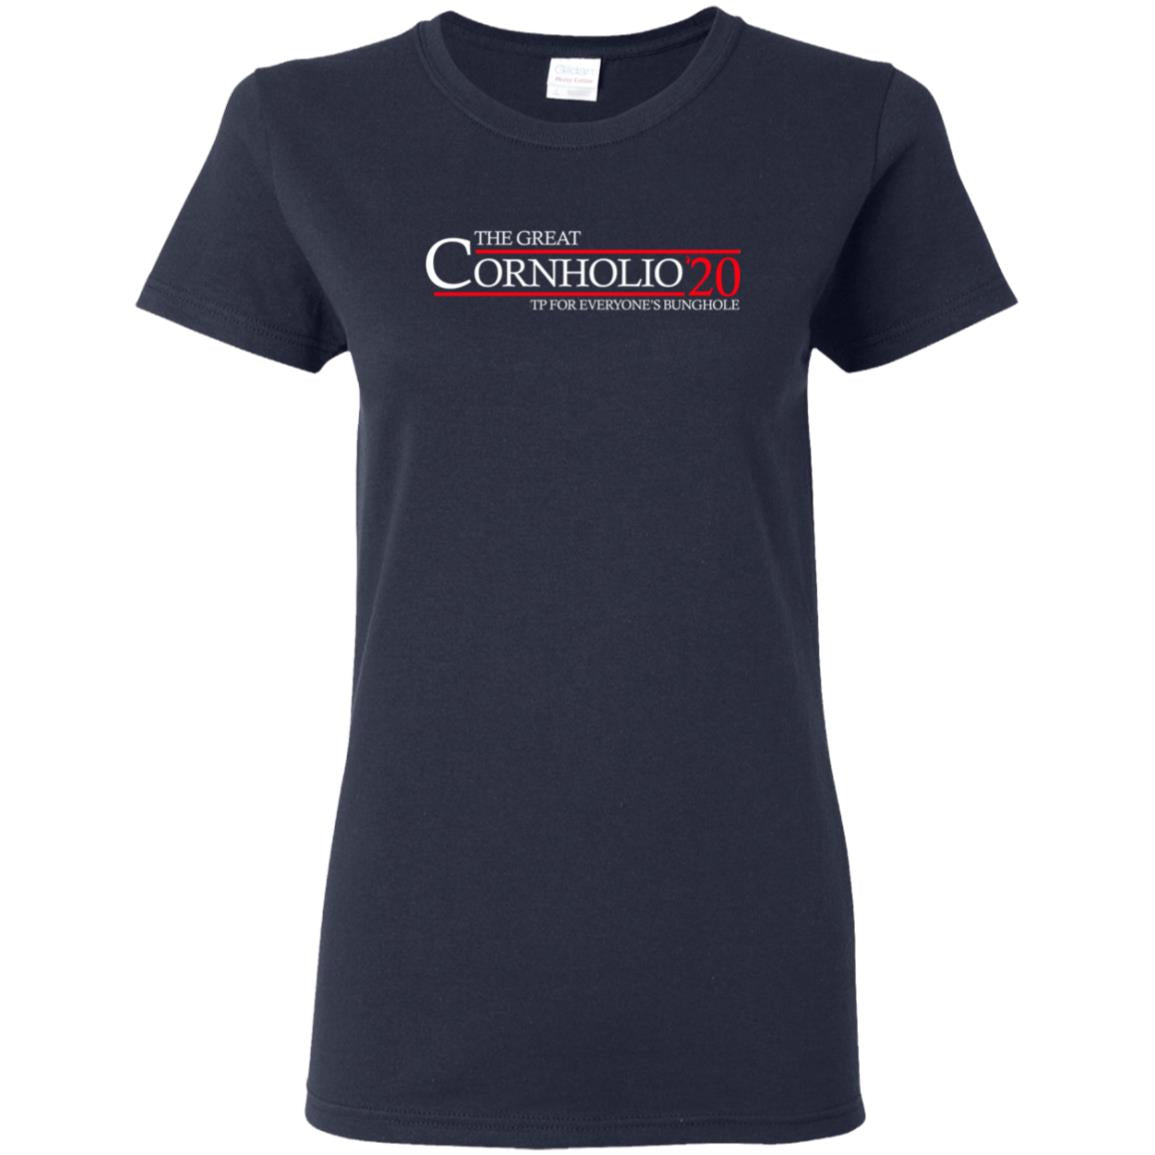 Cornholio 20 Ladies Tee